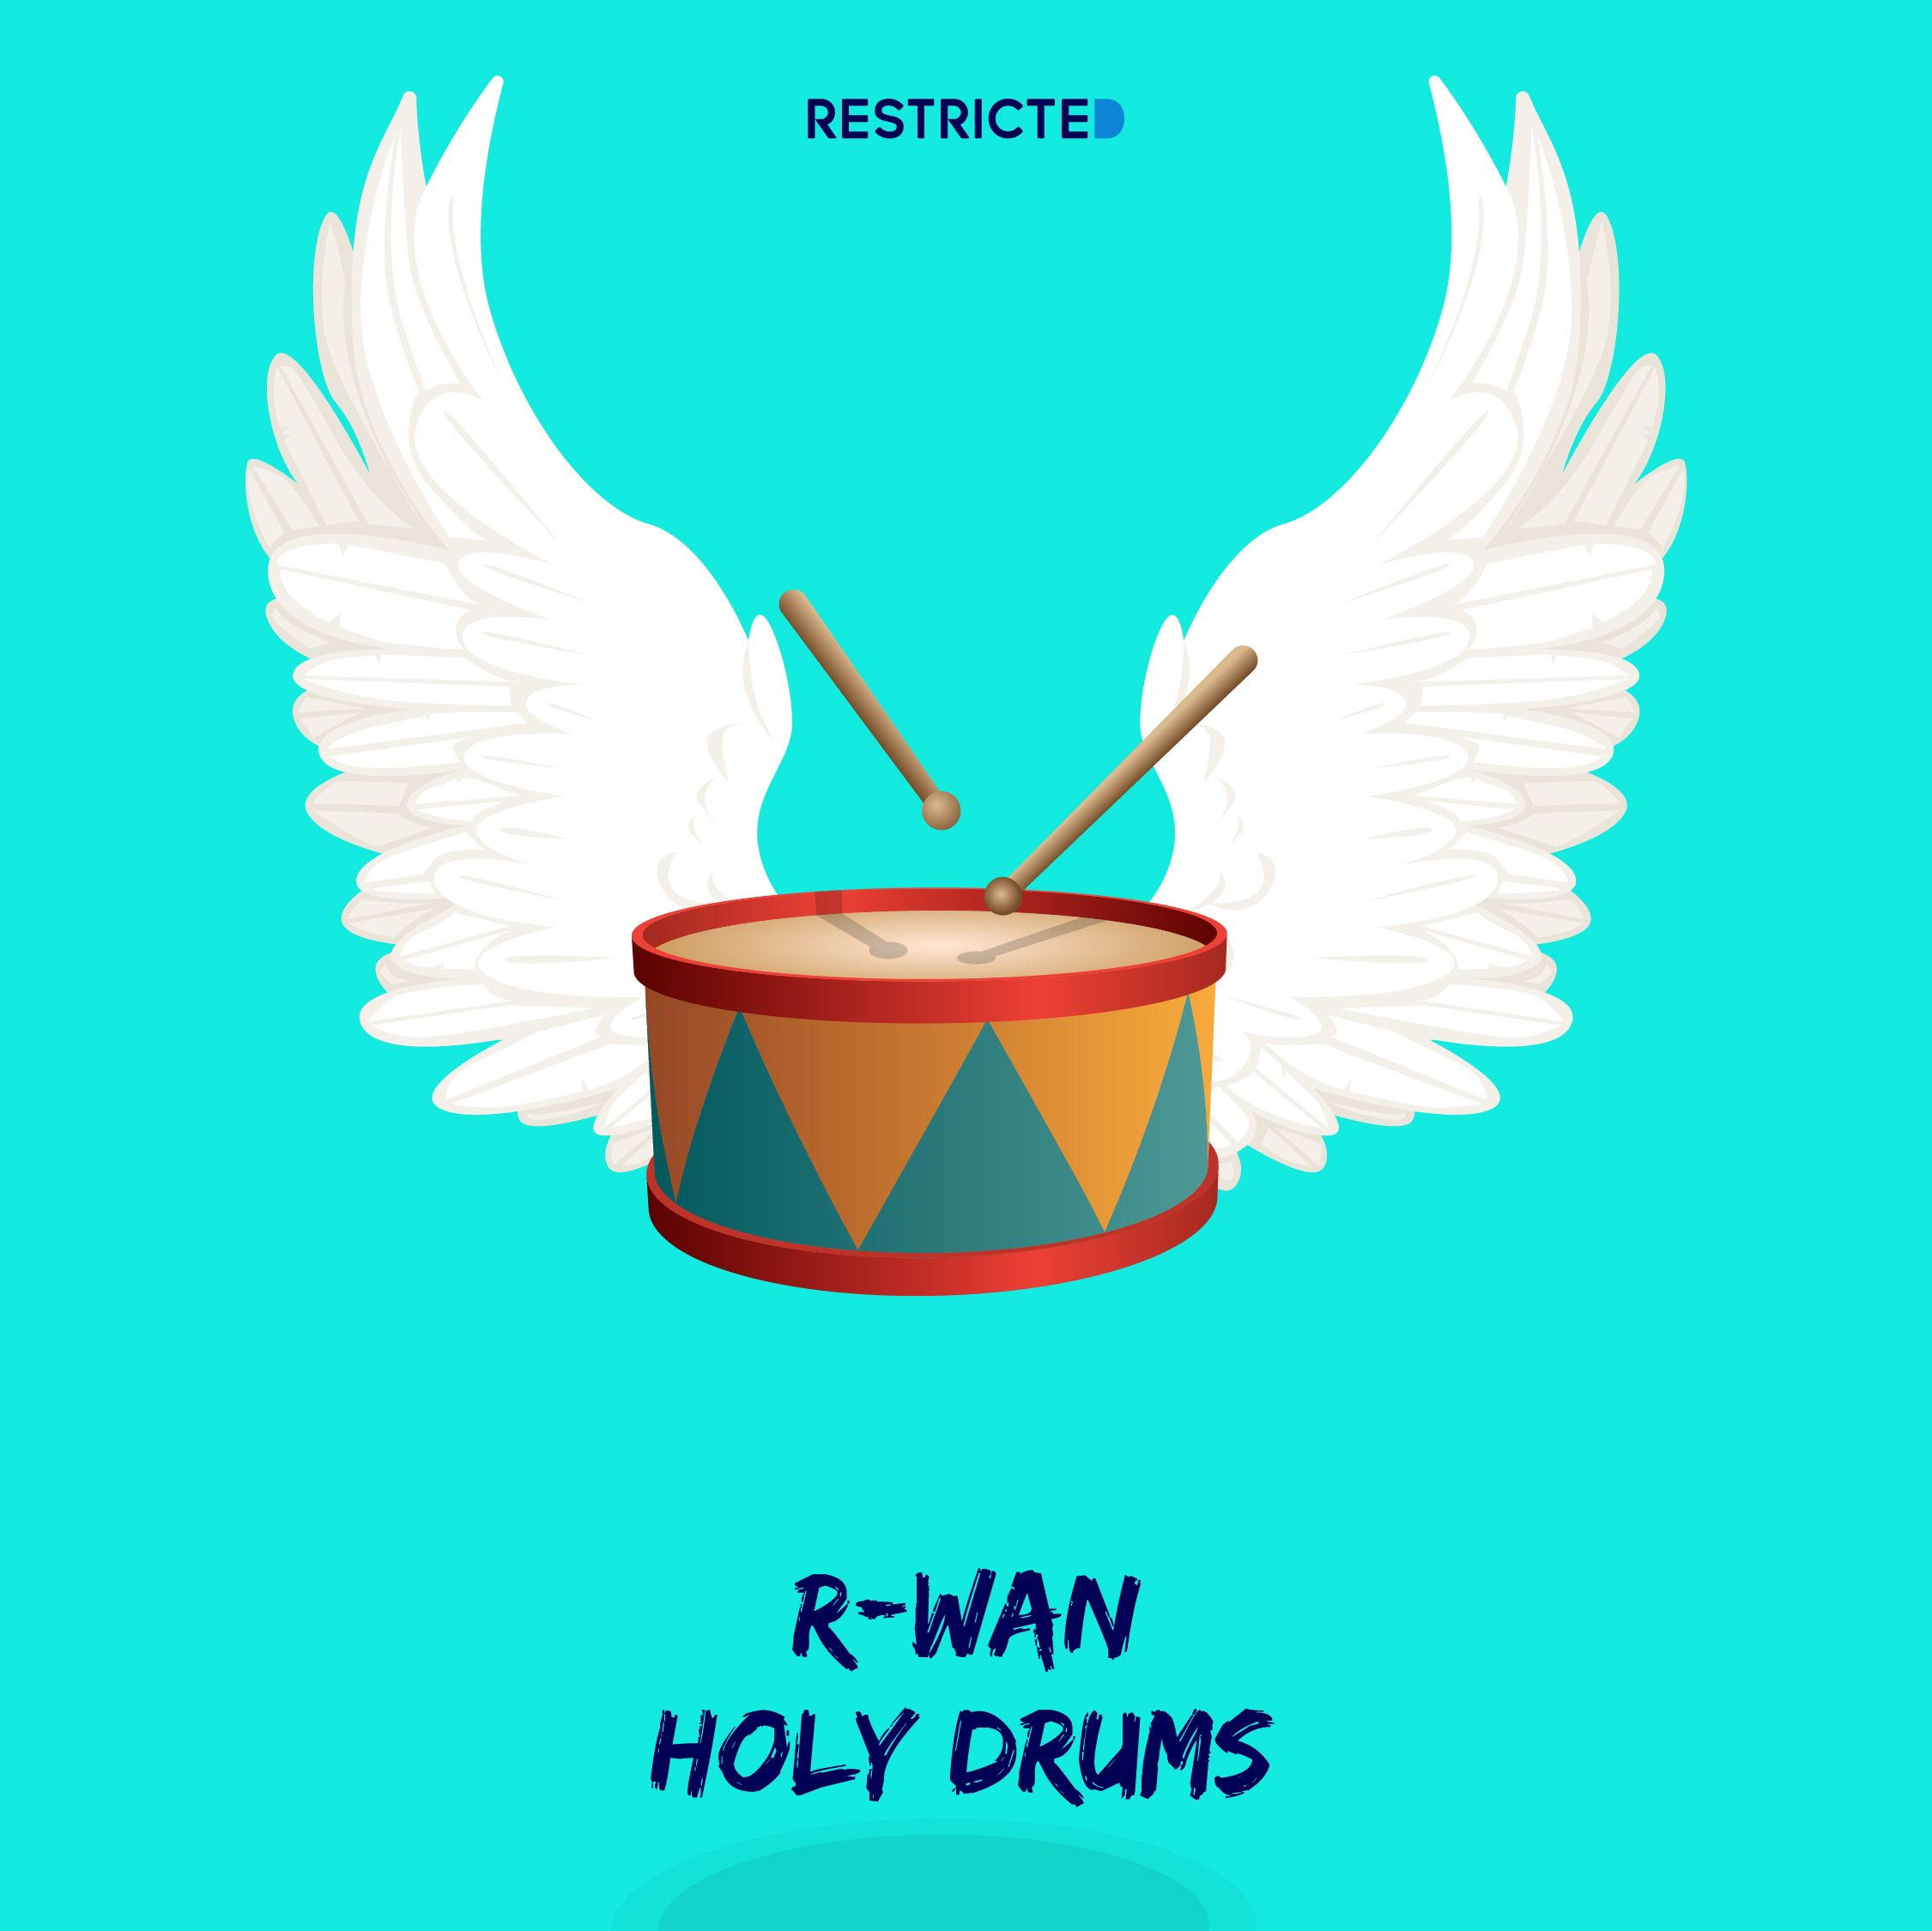 r-wan_-_holy_drums_restricted.jpg